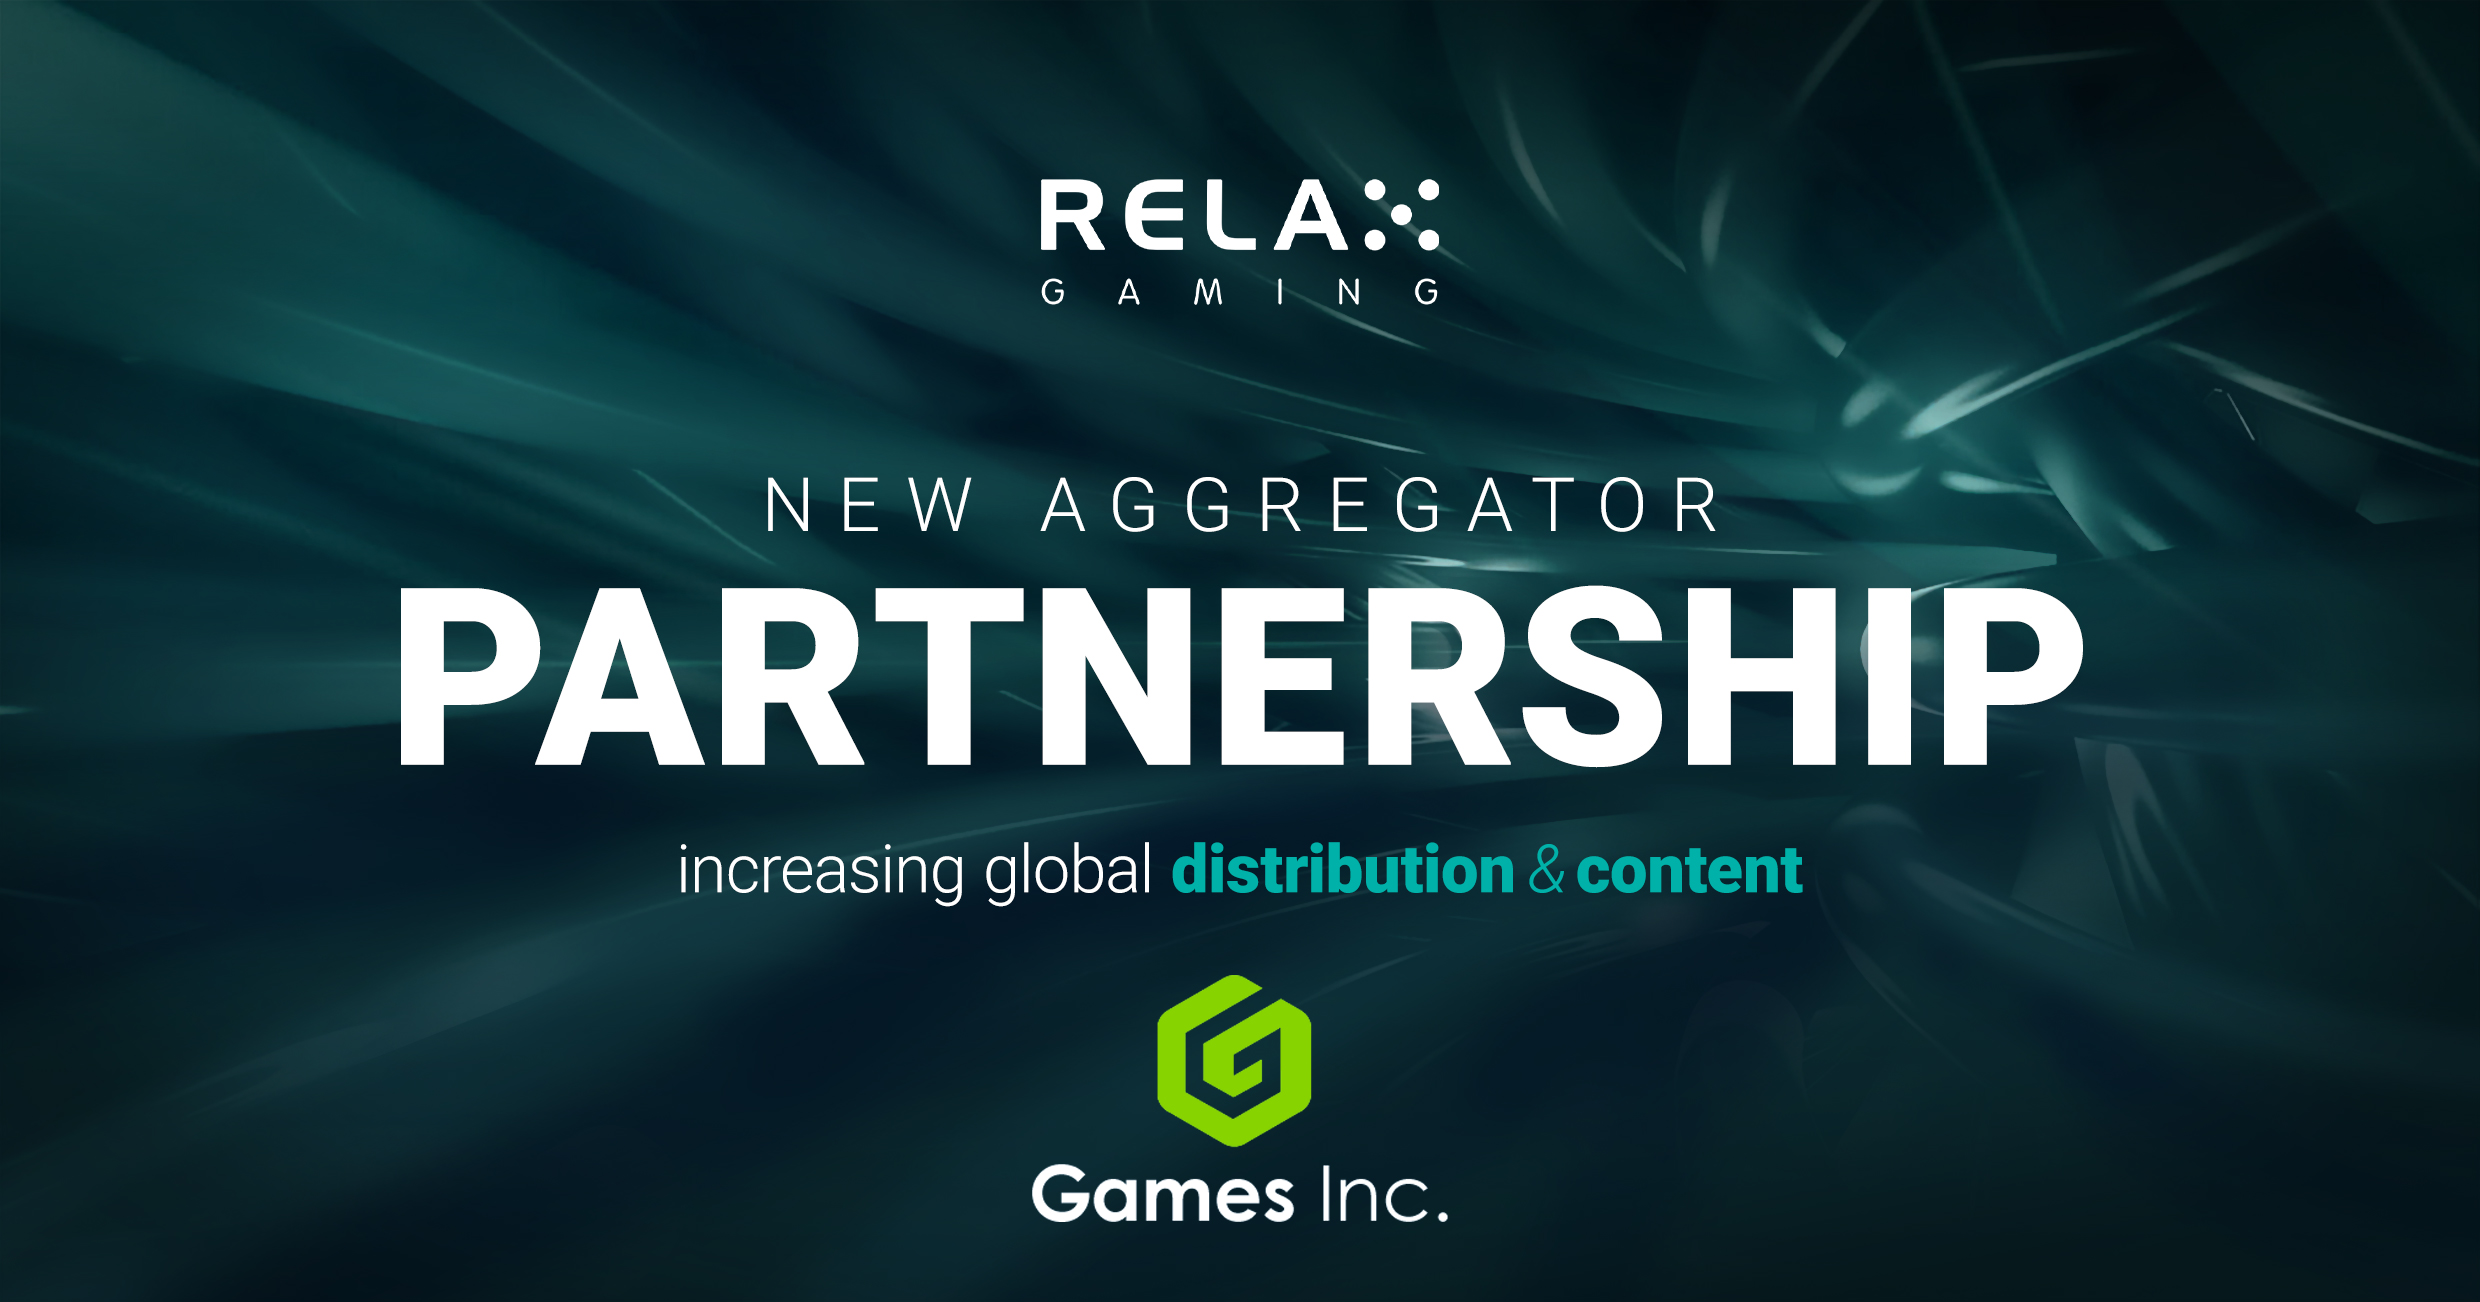 Games Inc joins forces with Relax Gaming